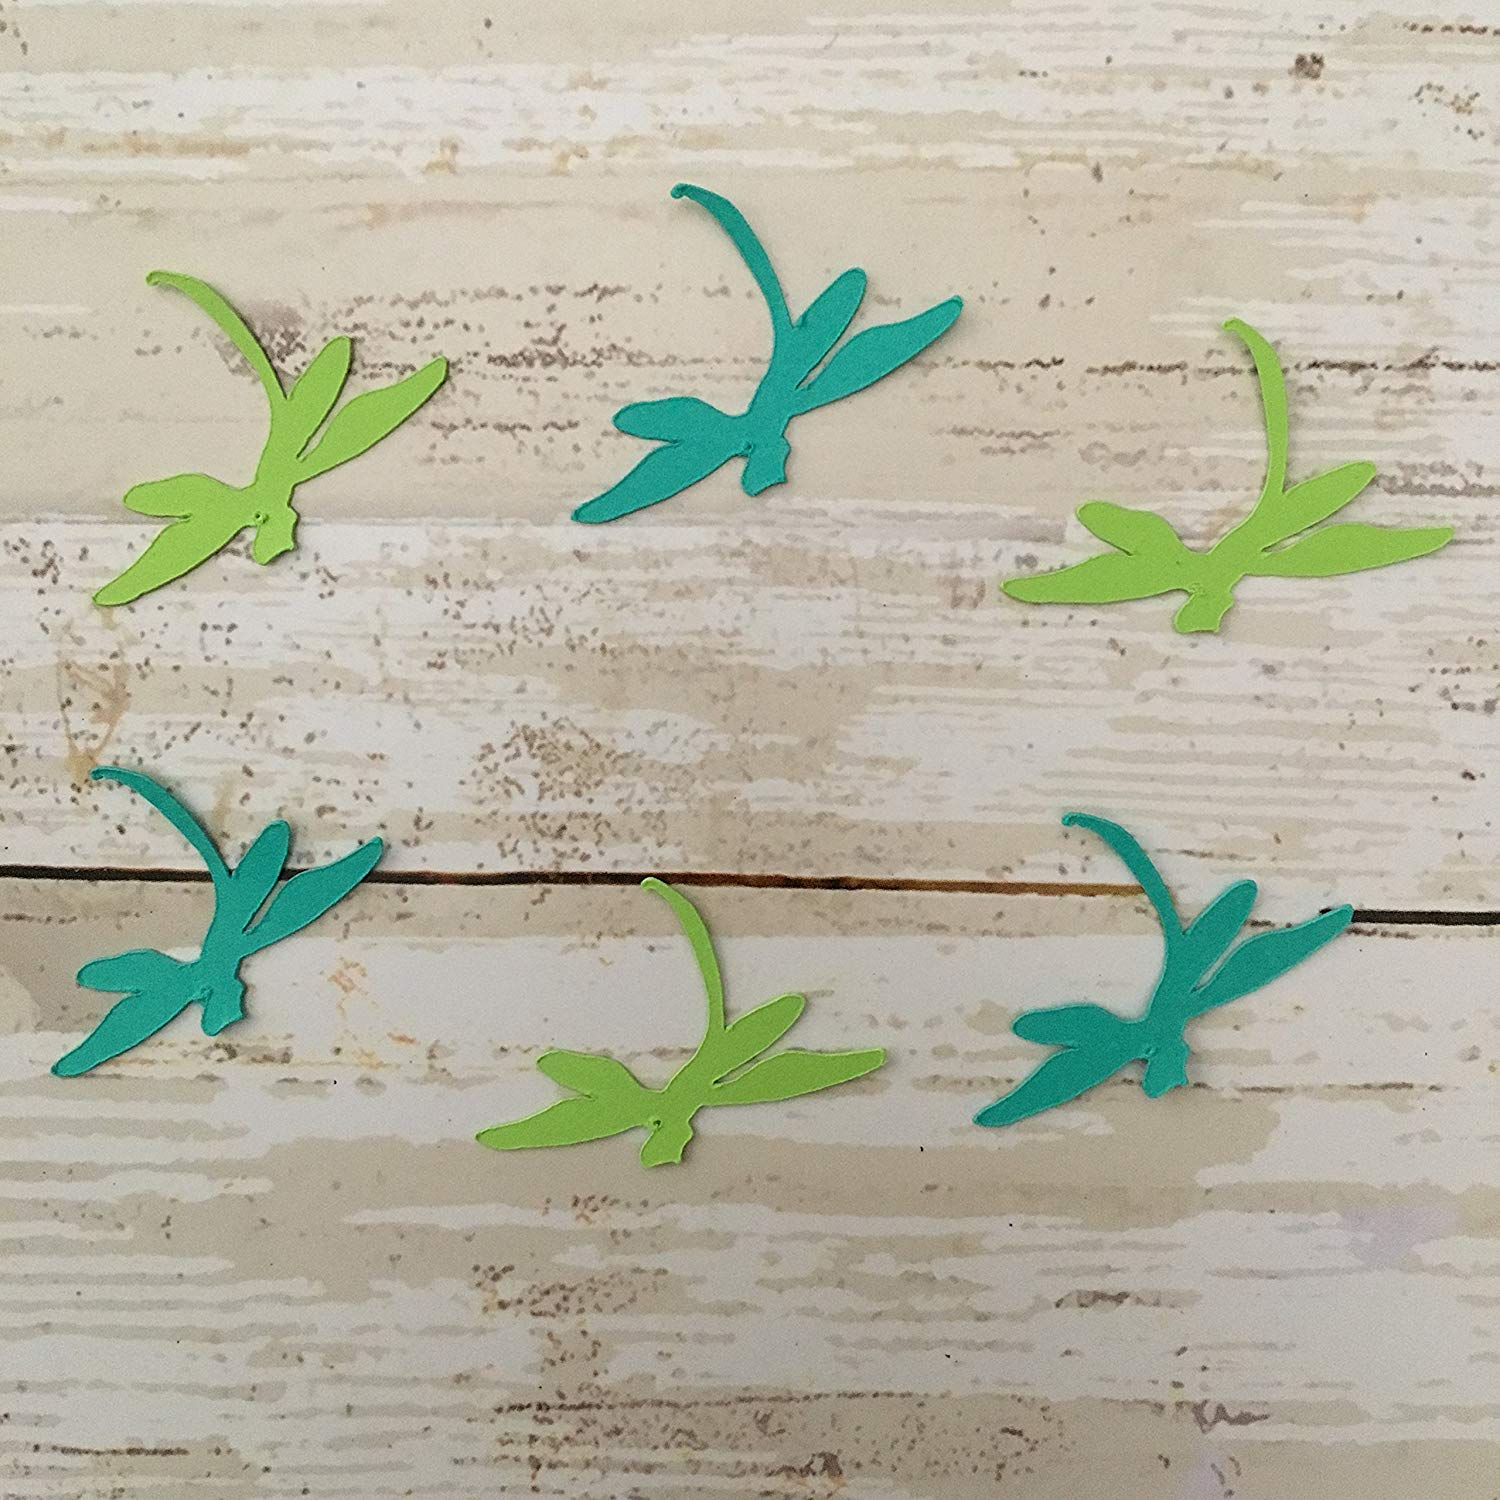 Dragonfly Vinyl Stickers, Dragonfly Decorations, Bug Party Supplies, Insect Theme, Summer Theme, Summer Party Supplies, Table Scatter, Dragonfly Cut Out, Sticker